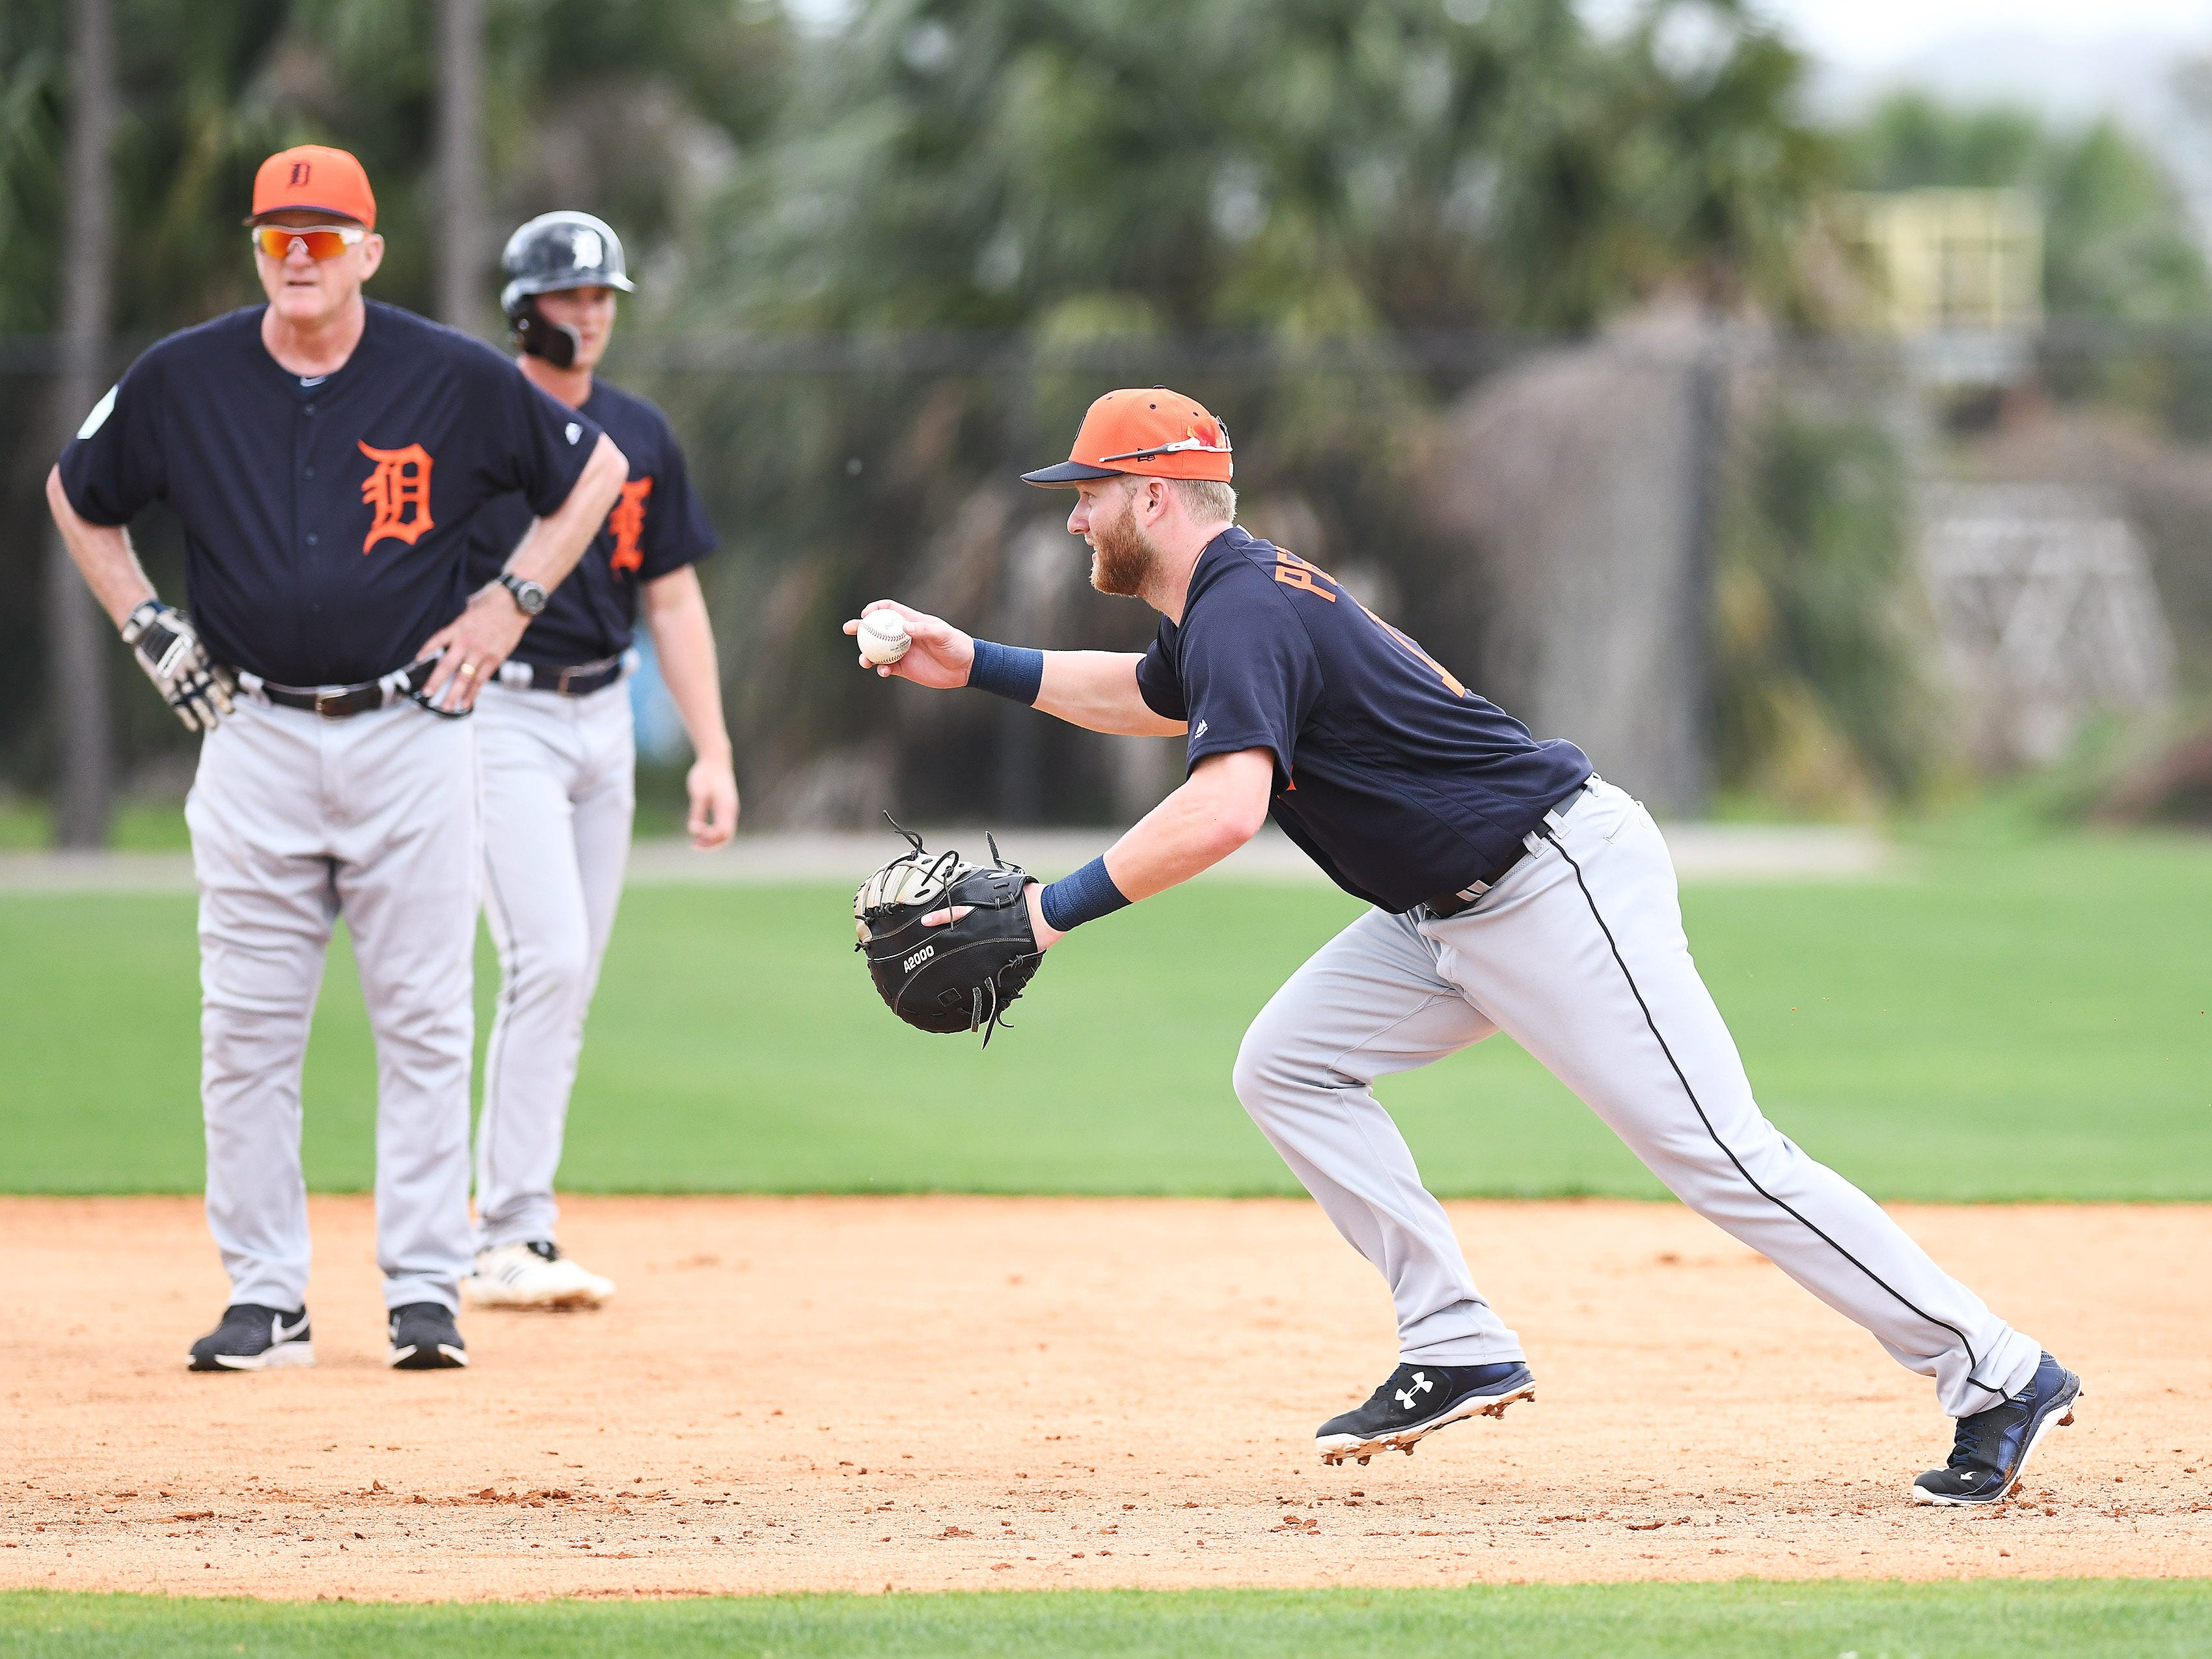 The Tigers' Dustin Peterson starts a rundown during a rundown drill.